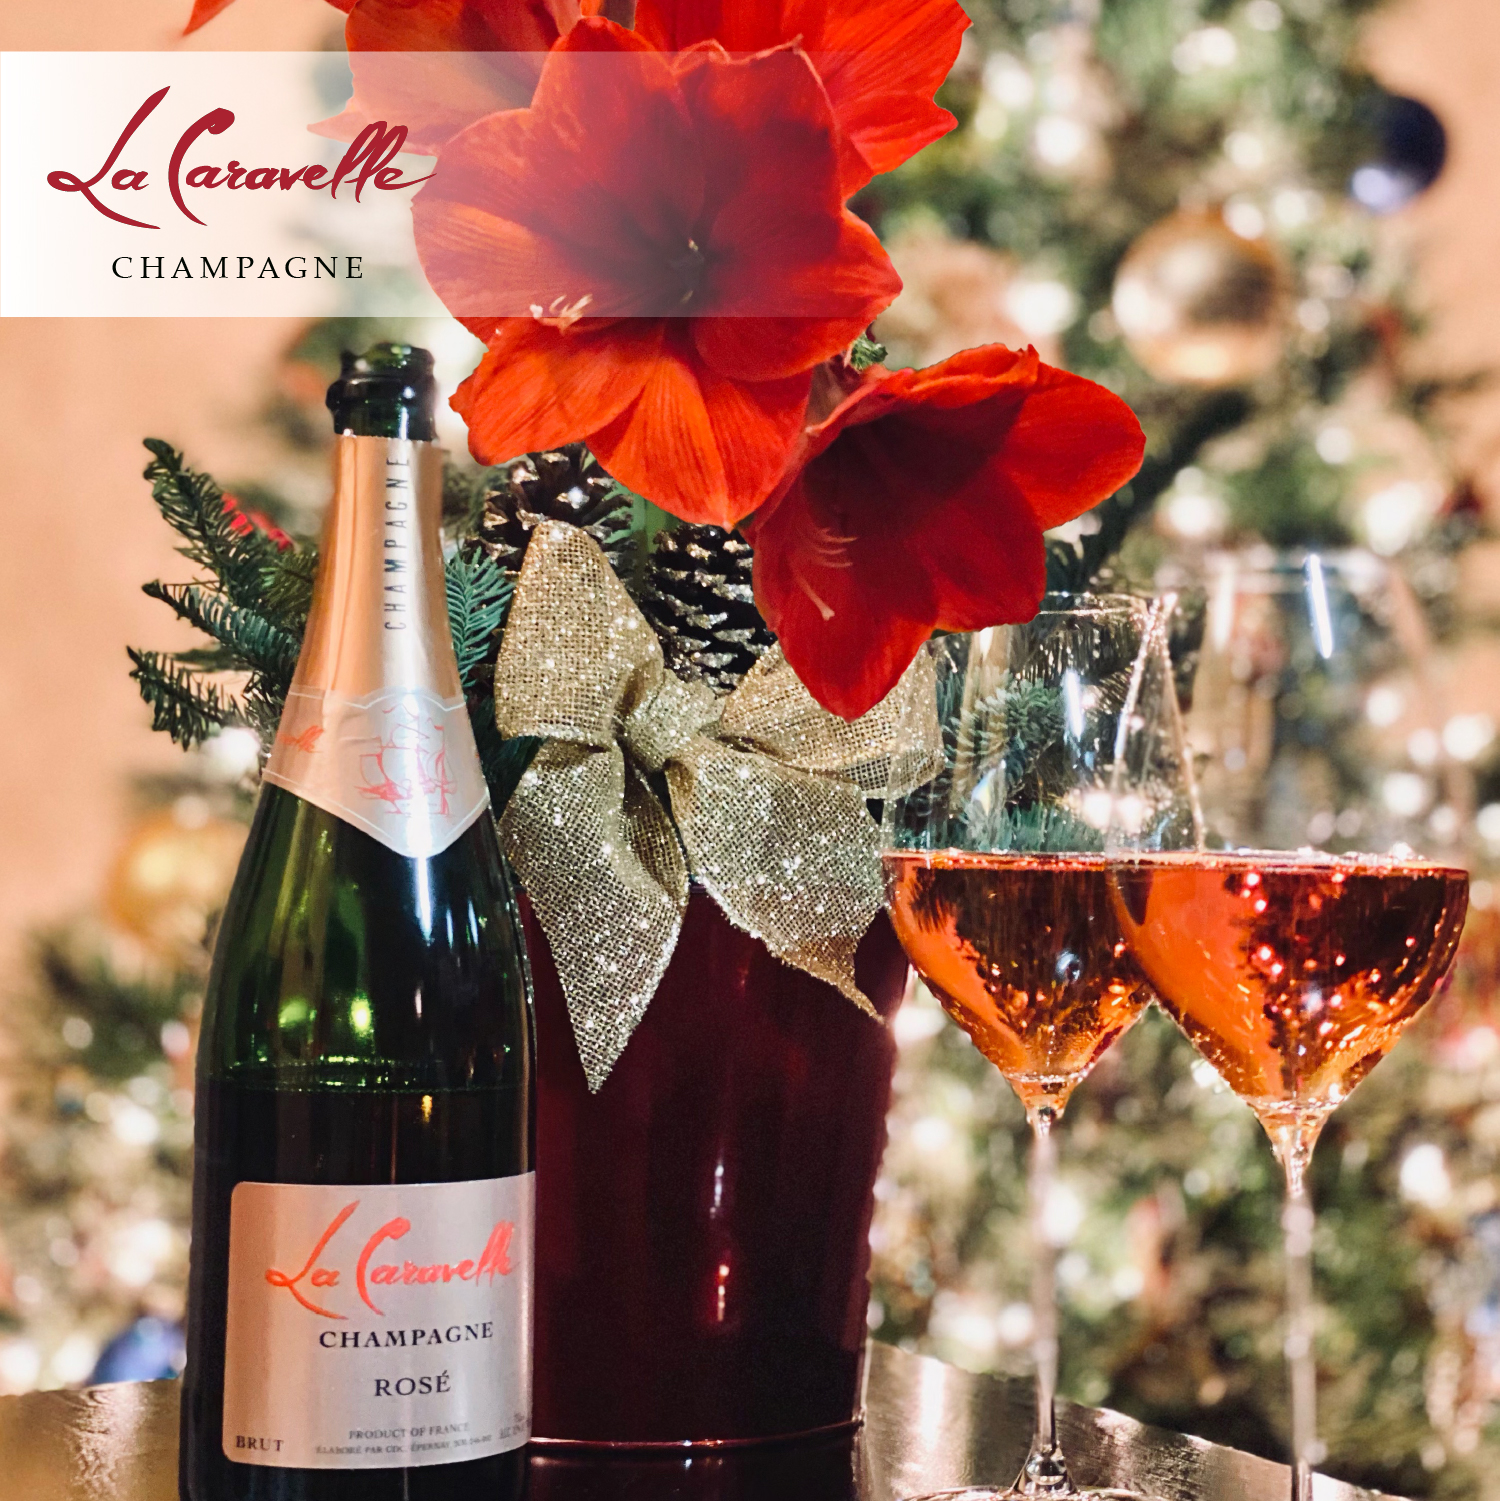 Send a beautiful and long-lasting red amaryllis plant. Watch it bloom over the season while enjoying a night of bubbles. Sip this wonderful and delightful Rosé by La Caravelle Champagne.